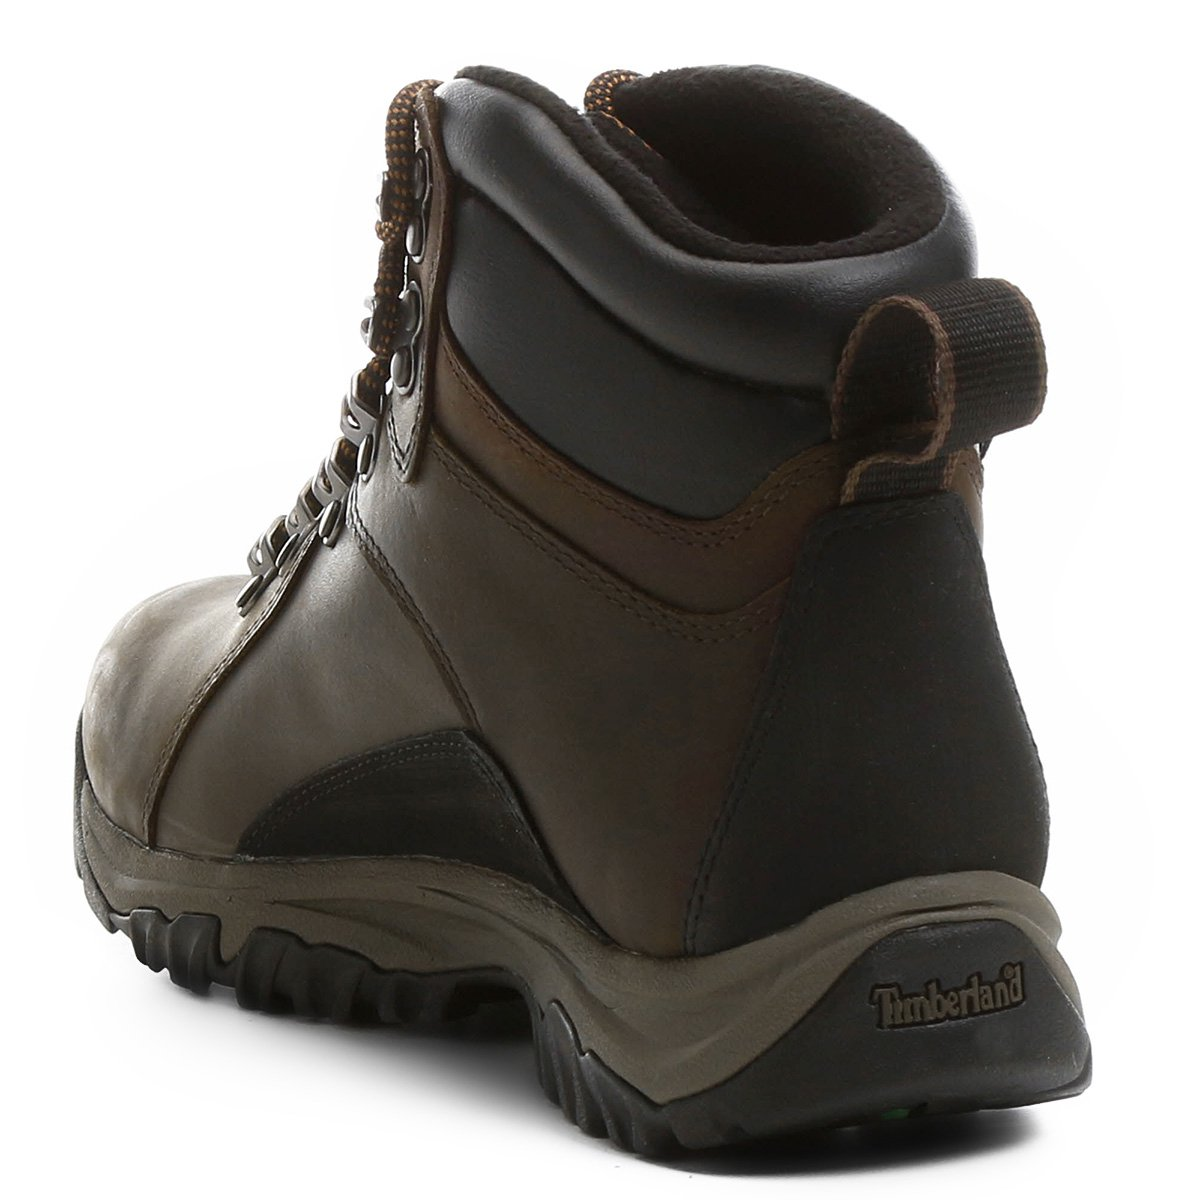 f630269a19 Bota Timberland Thorton Waterproof Insulated - Compre Agora